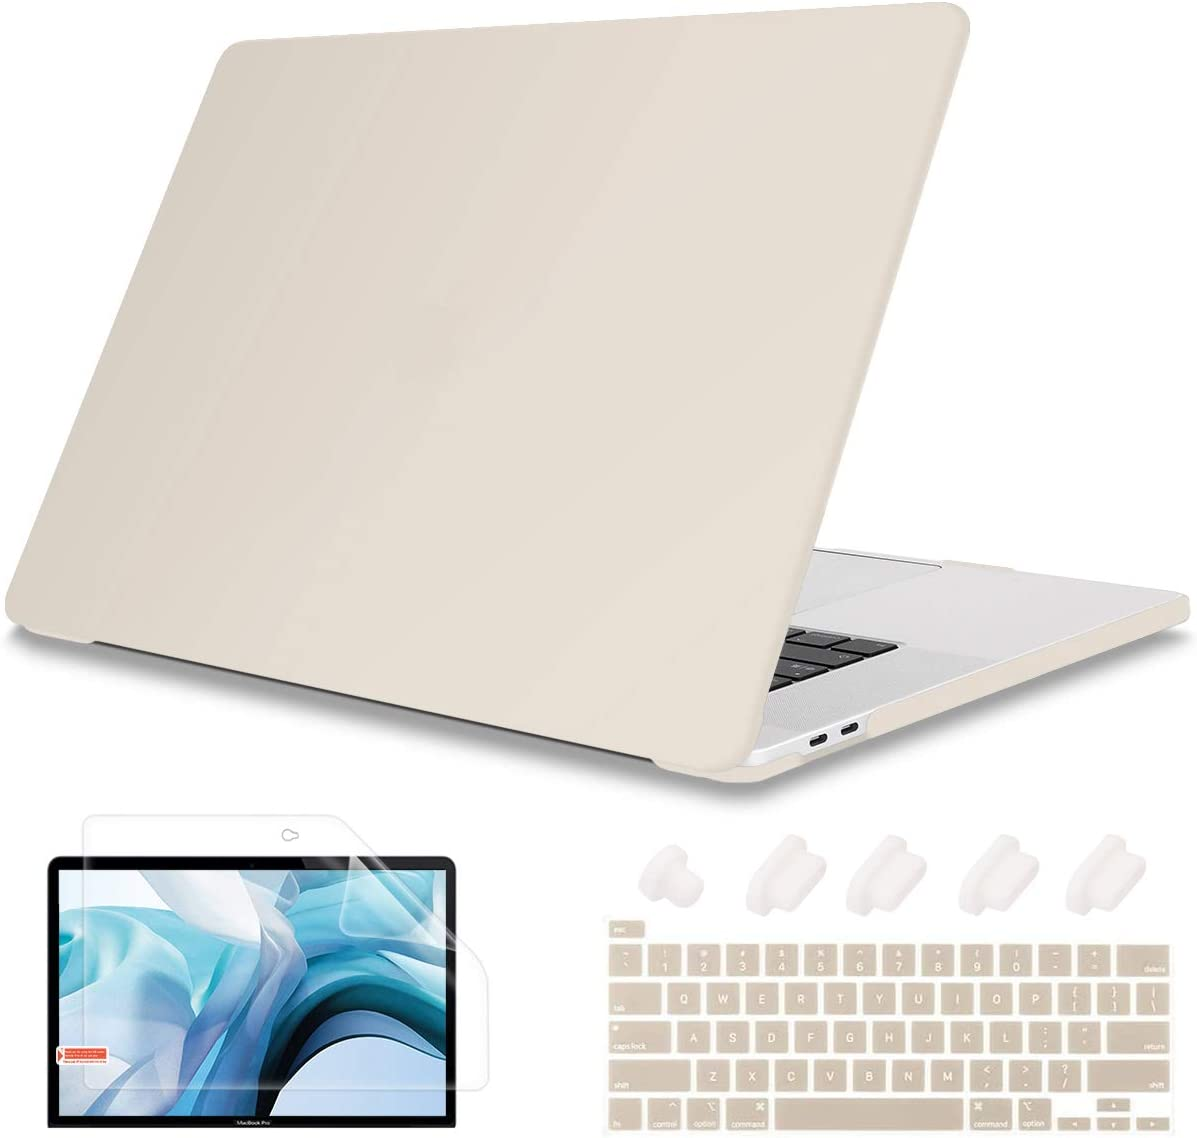 May Chen Laptop case MacBook Pro 13 inch Case Models: A2251 A2289 (2020 Release), Plastic Hard Shell Case Cover with Keyboard cvoer for MacBook Pro 13 with Touch Bar, Rock ash